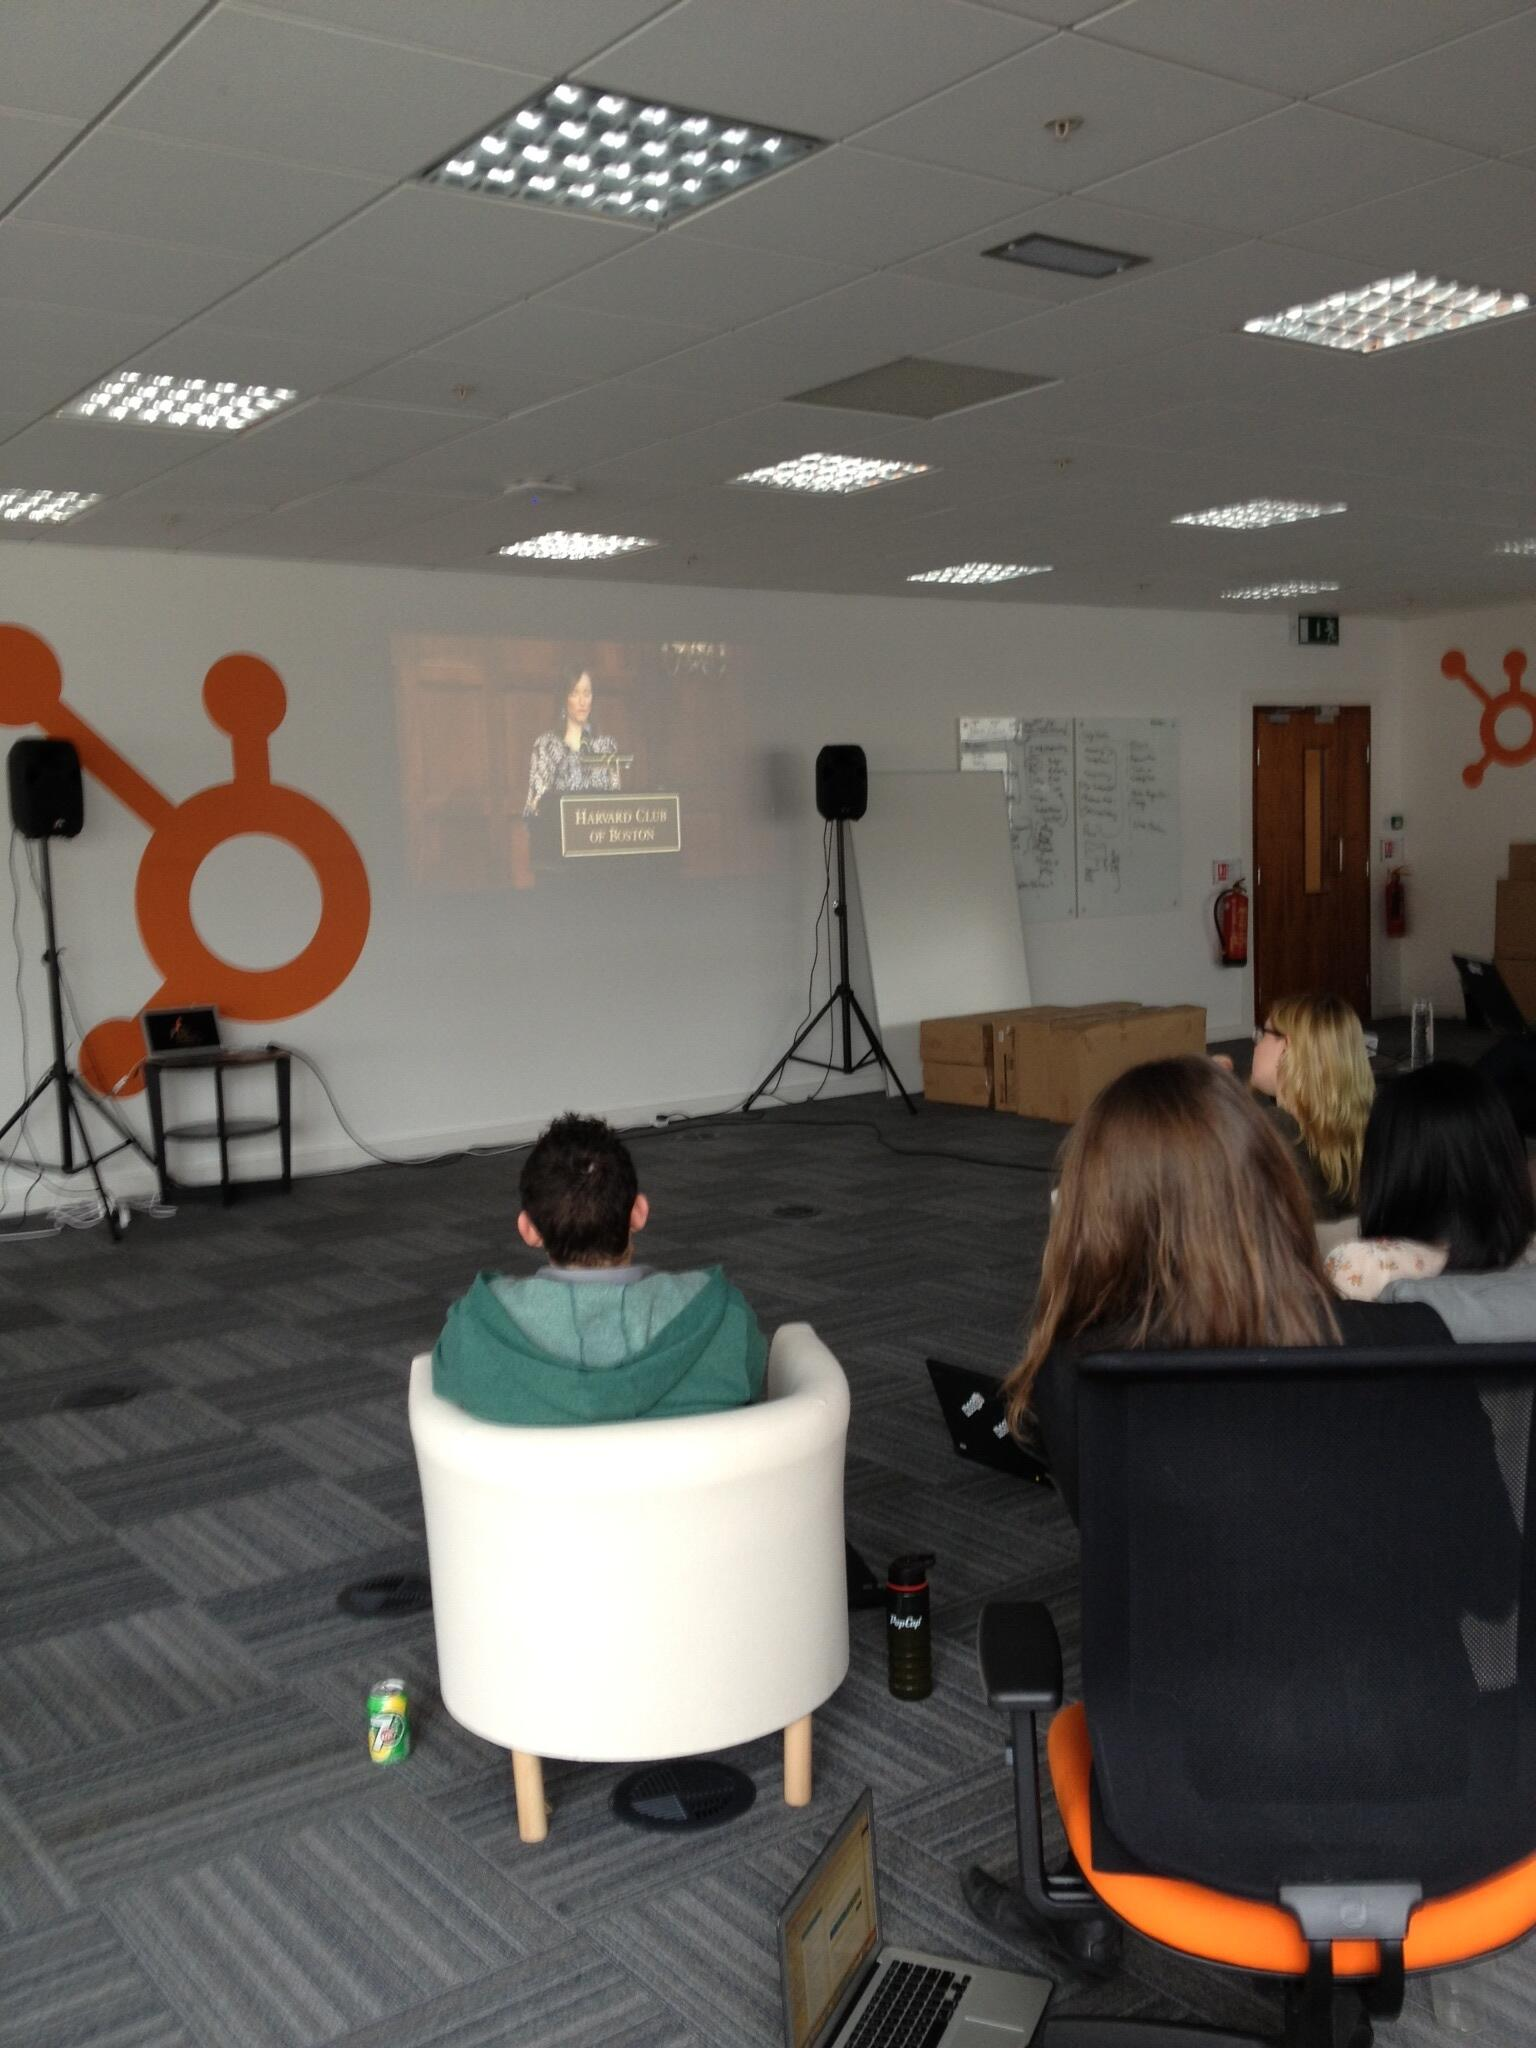 Twitter / Pistachio: Dublin office of @HubSpot ...